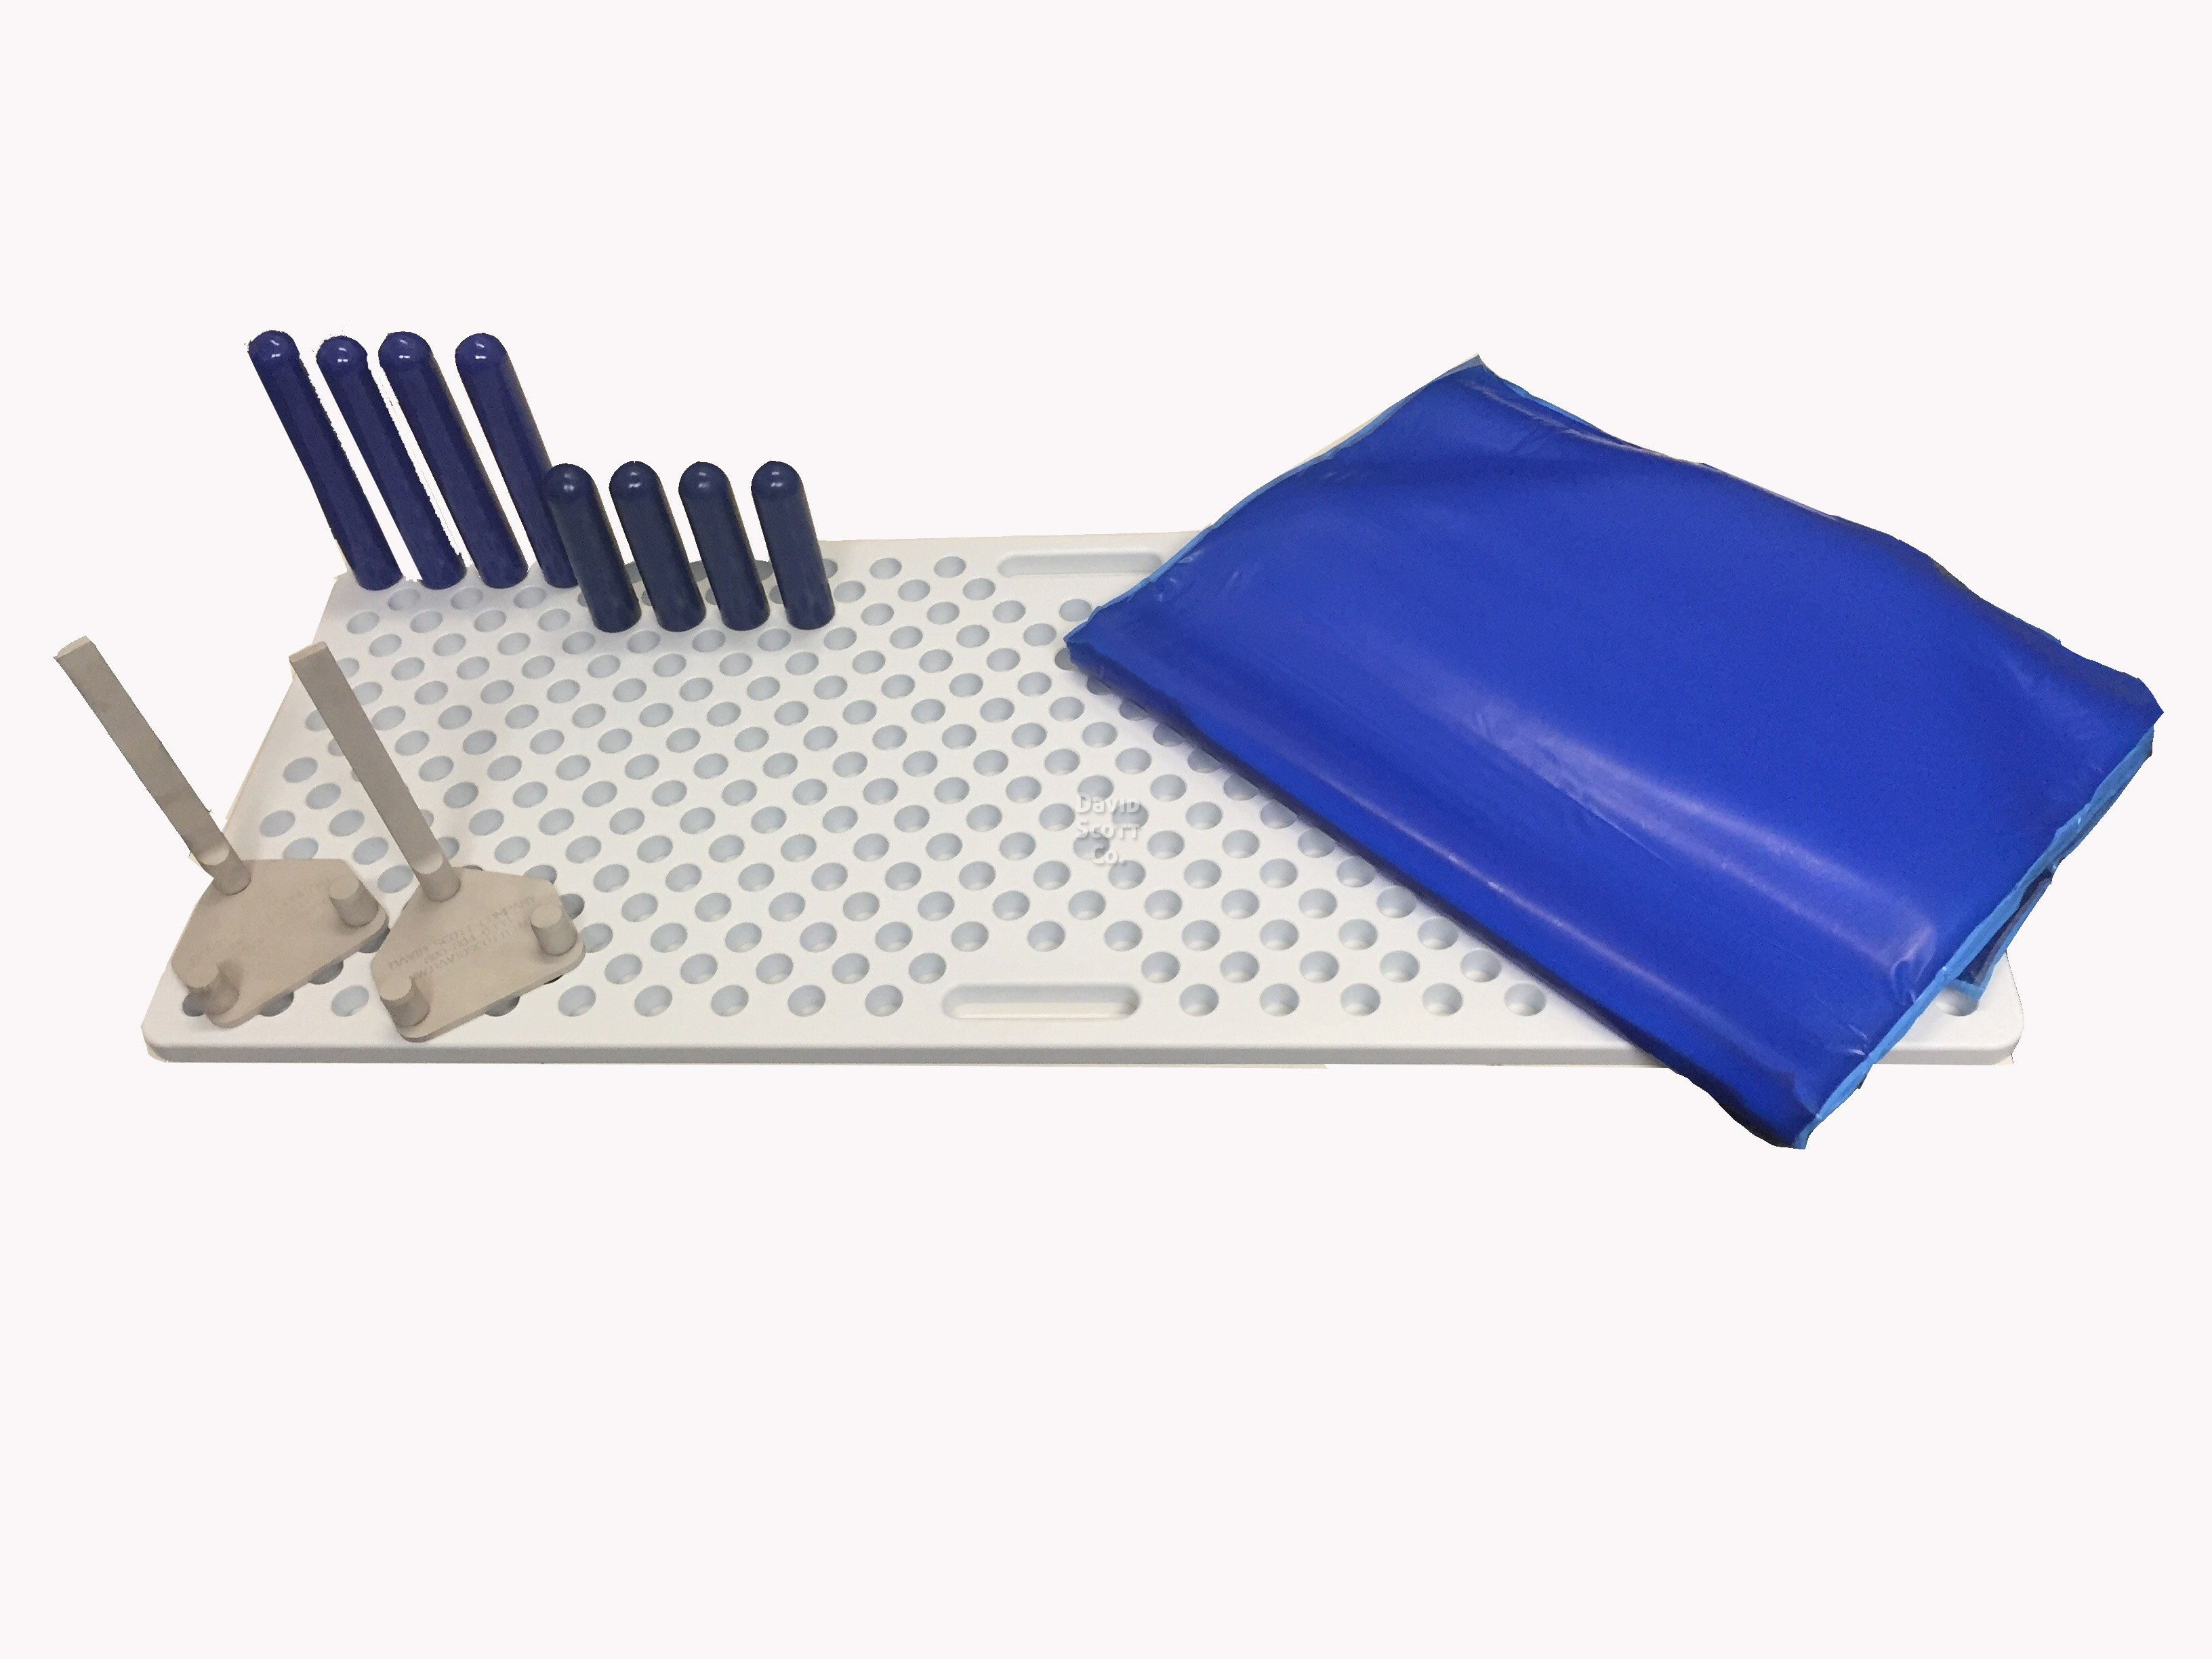 Surgical Peg Board Positioner With Metal Pegs